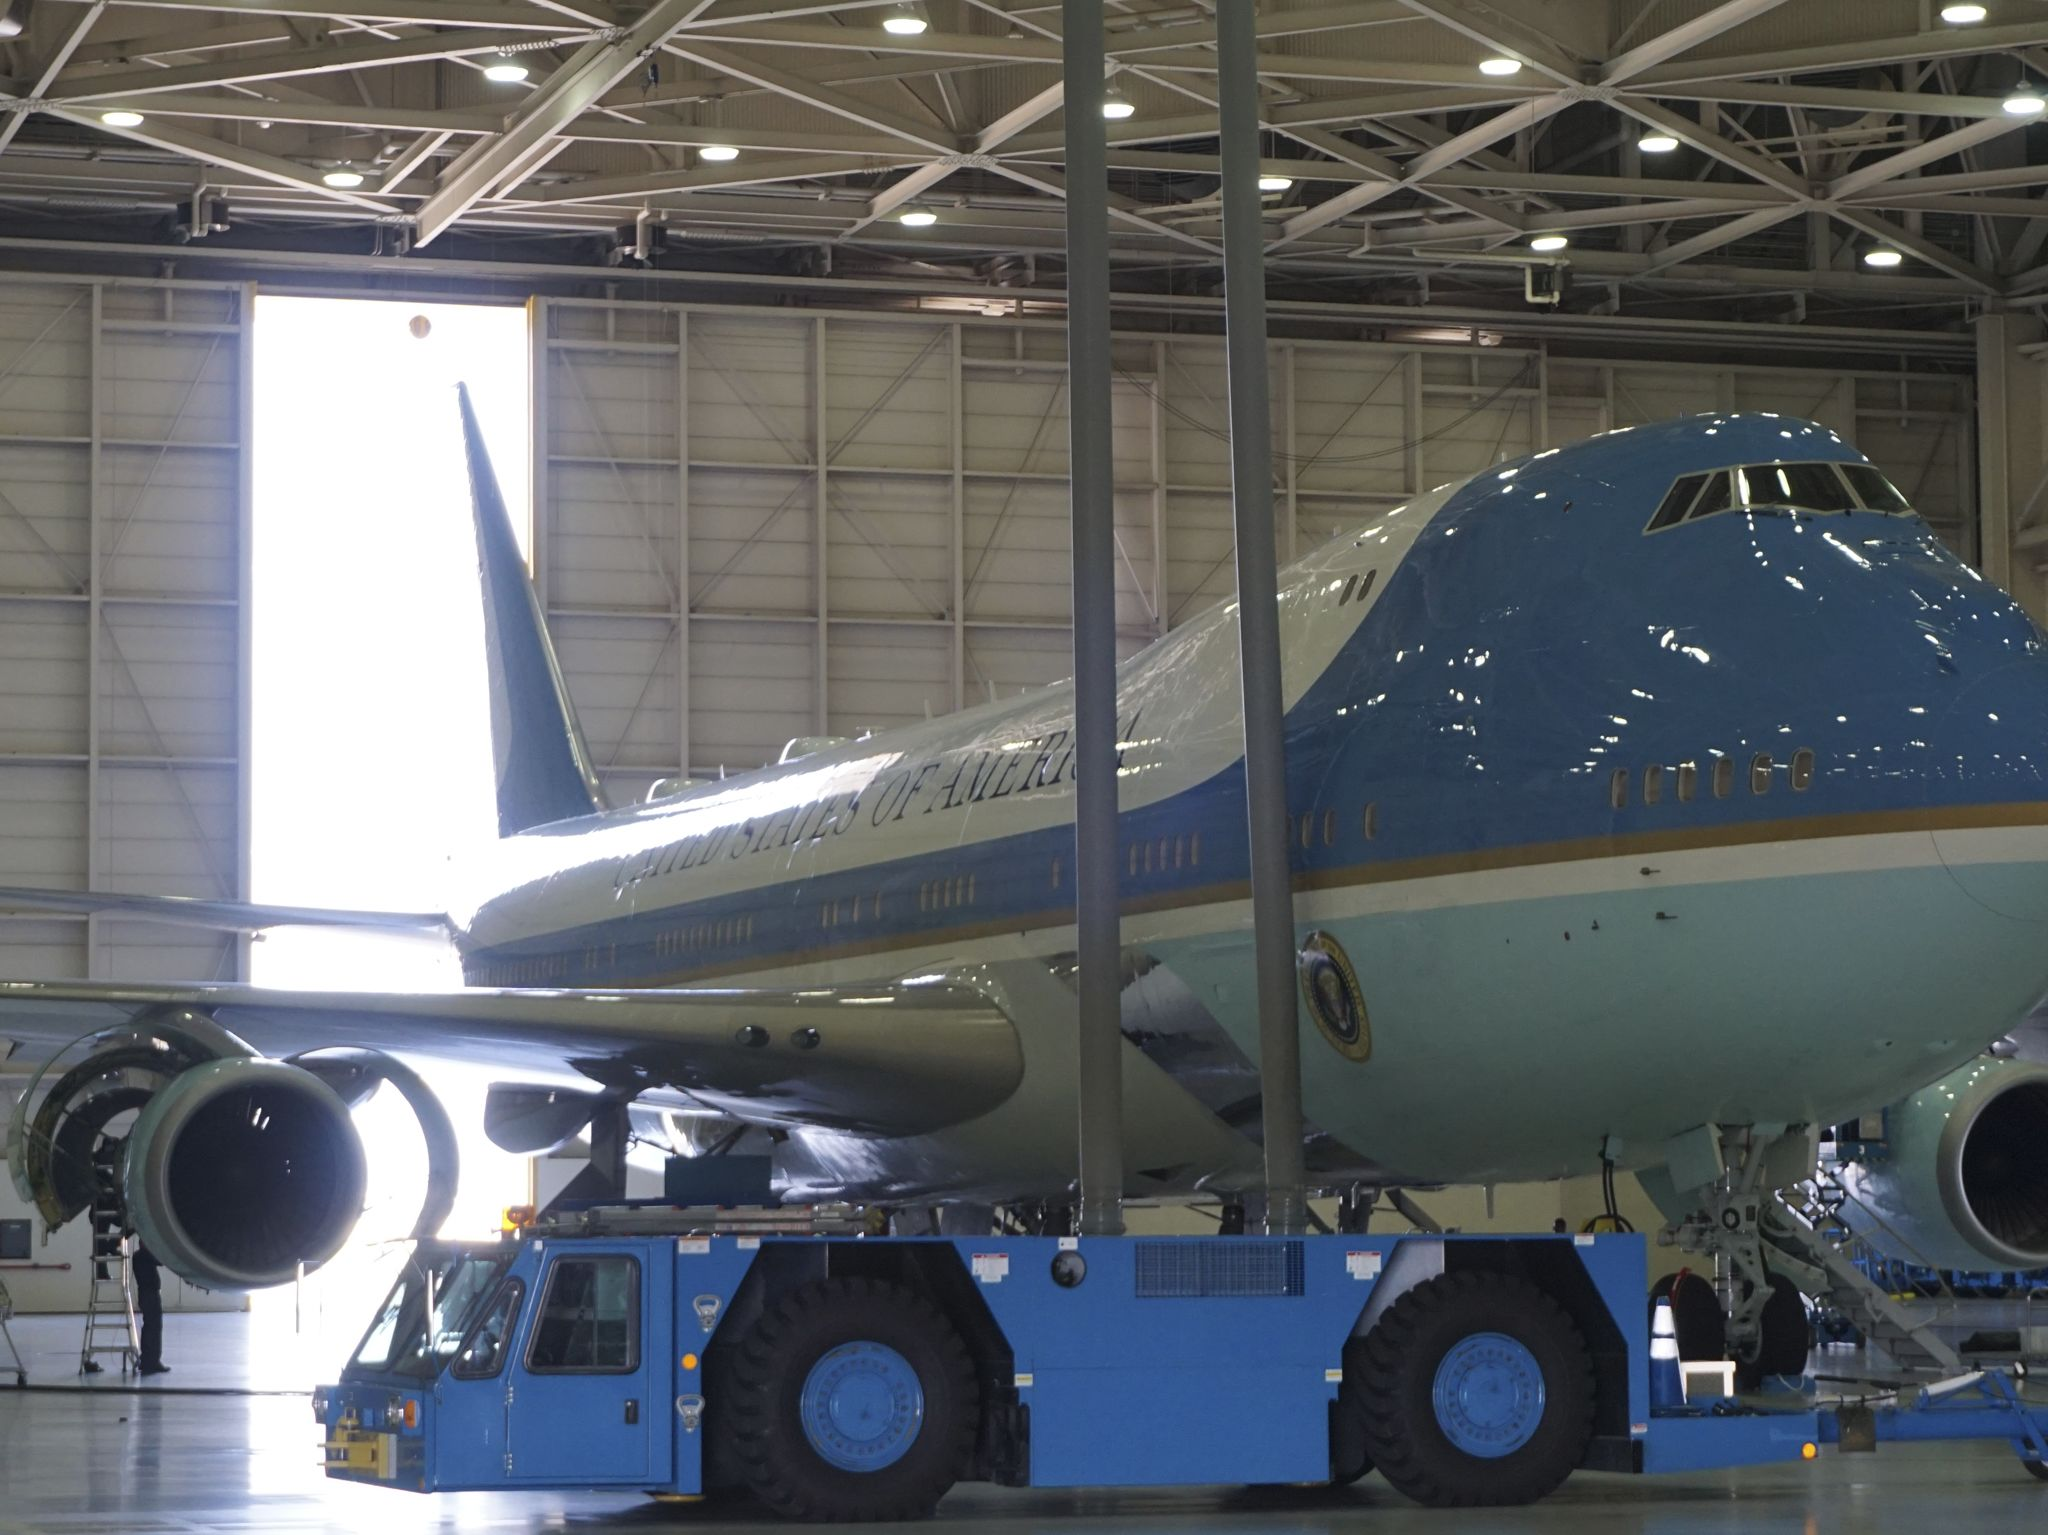 Air Force One in hangar 19. This image is from New Air Force one, The Flying Fortress. [Photo of the day - February 2021]